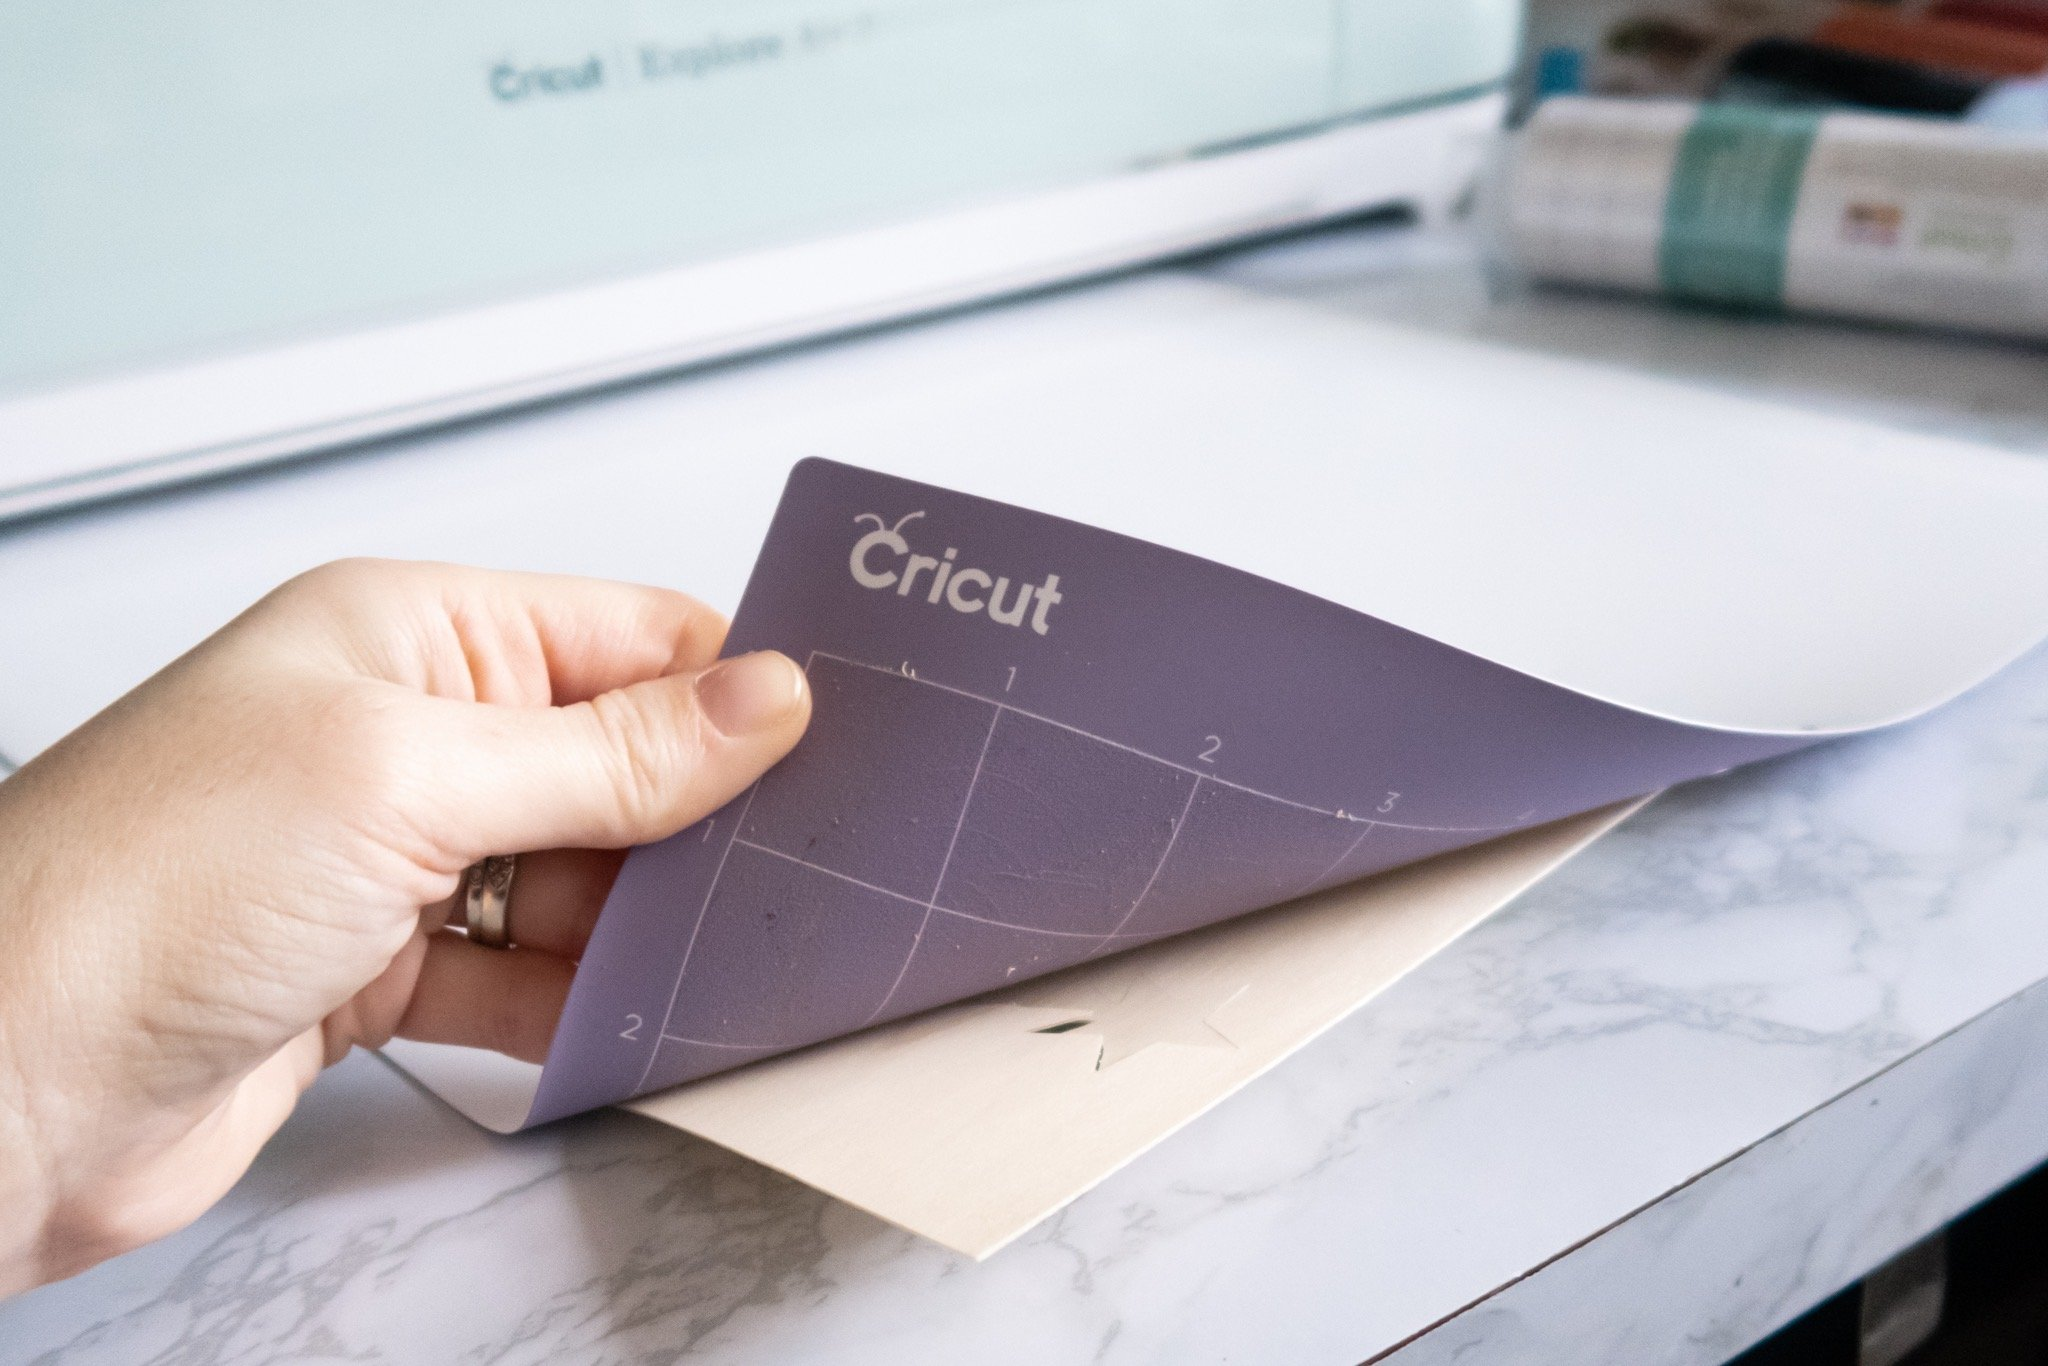 peeling cricut stronggrip mat away from wood veener